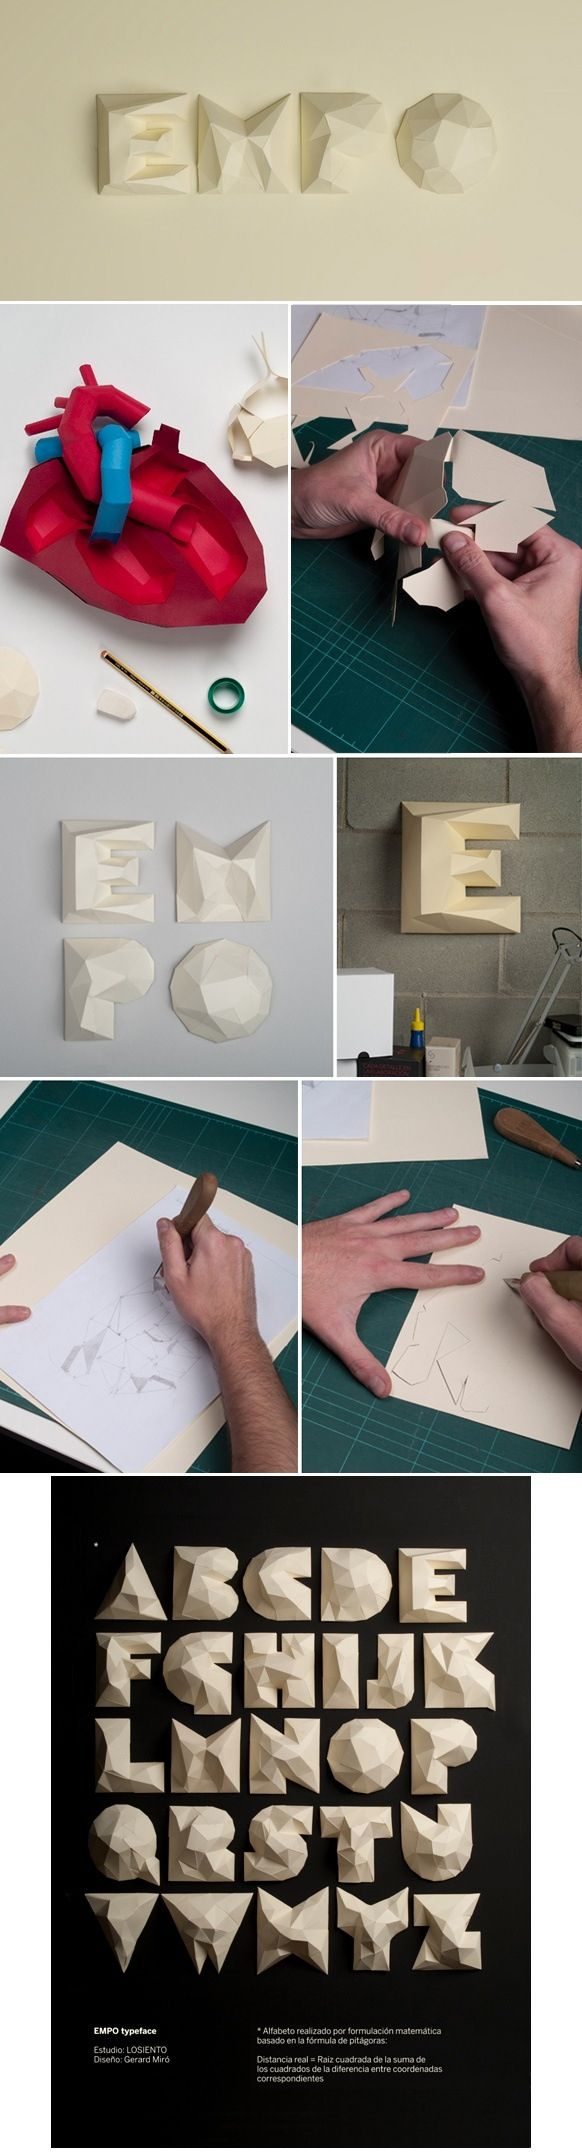 Designer: N/A #typography Found in: Front page The way the cardboard is used to pop out against the background is creative Font used: EMPO (custom)